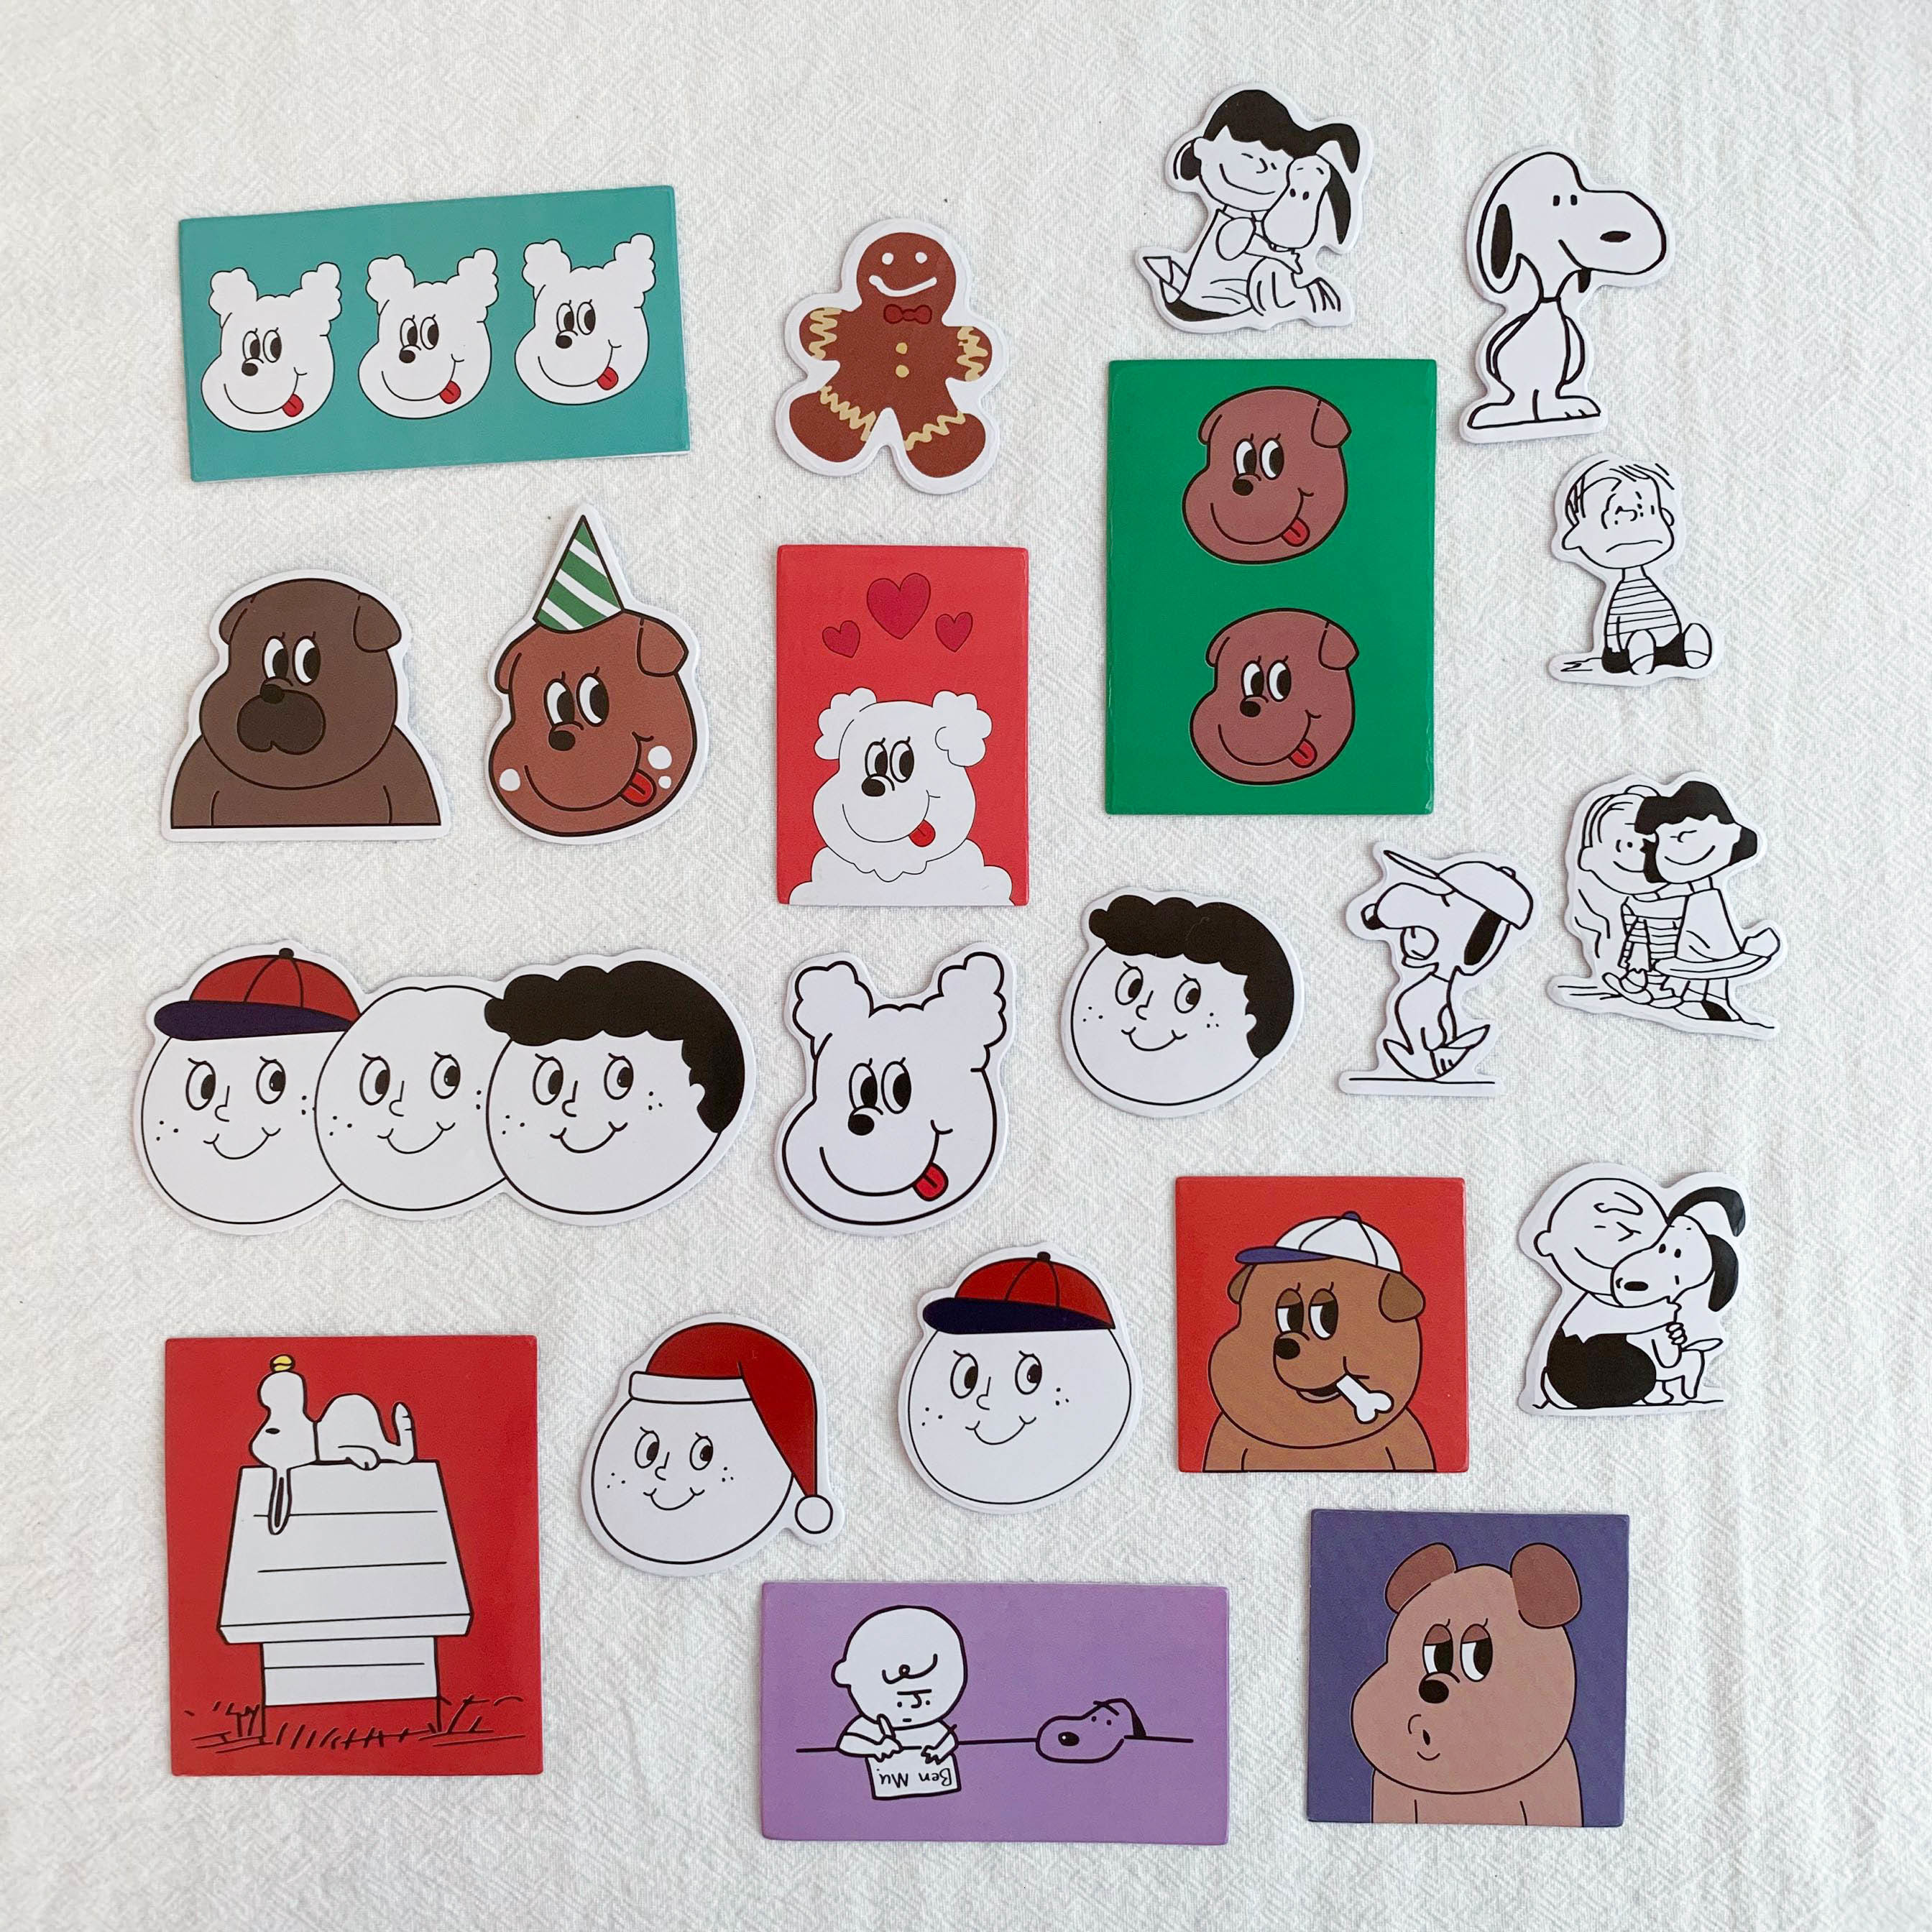 SIXONE 21 Pc Ins Cartoon Snoopy Smiling Face Decorative Sticker Kawaii Girl Stickers Scrapbooking Wall Decoration Stationery